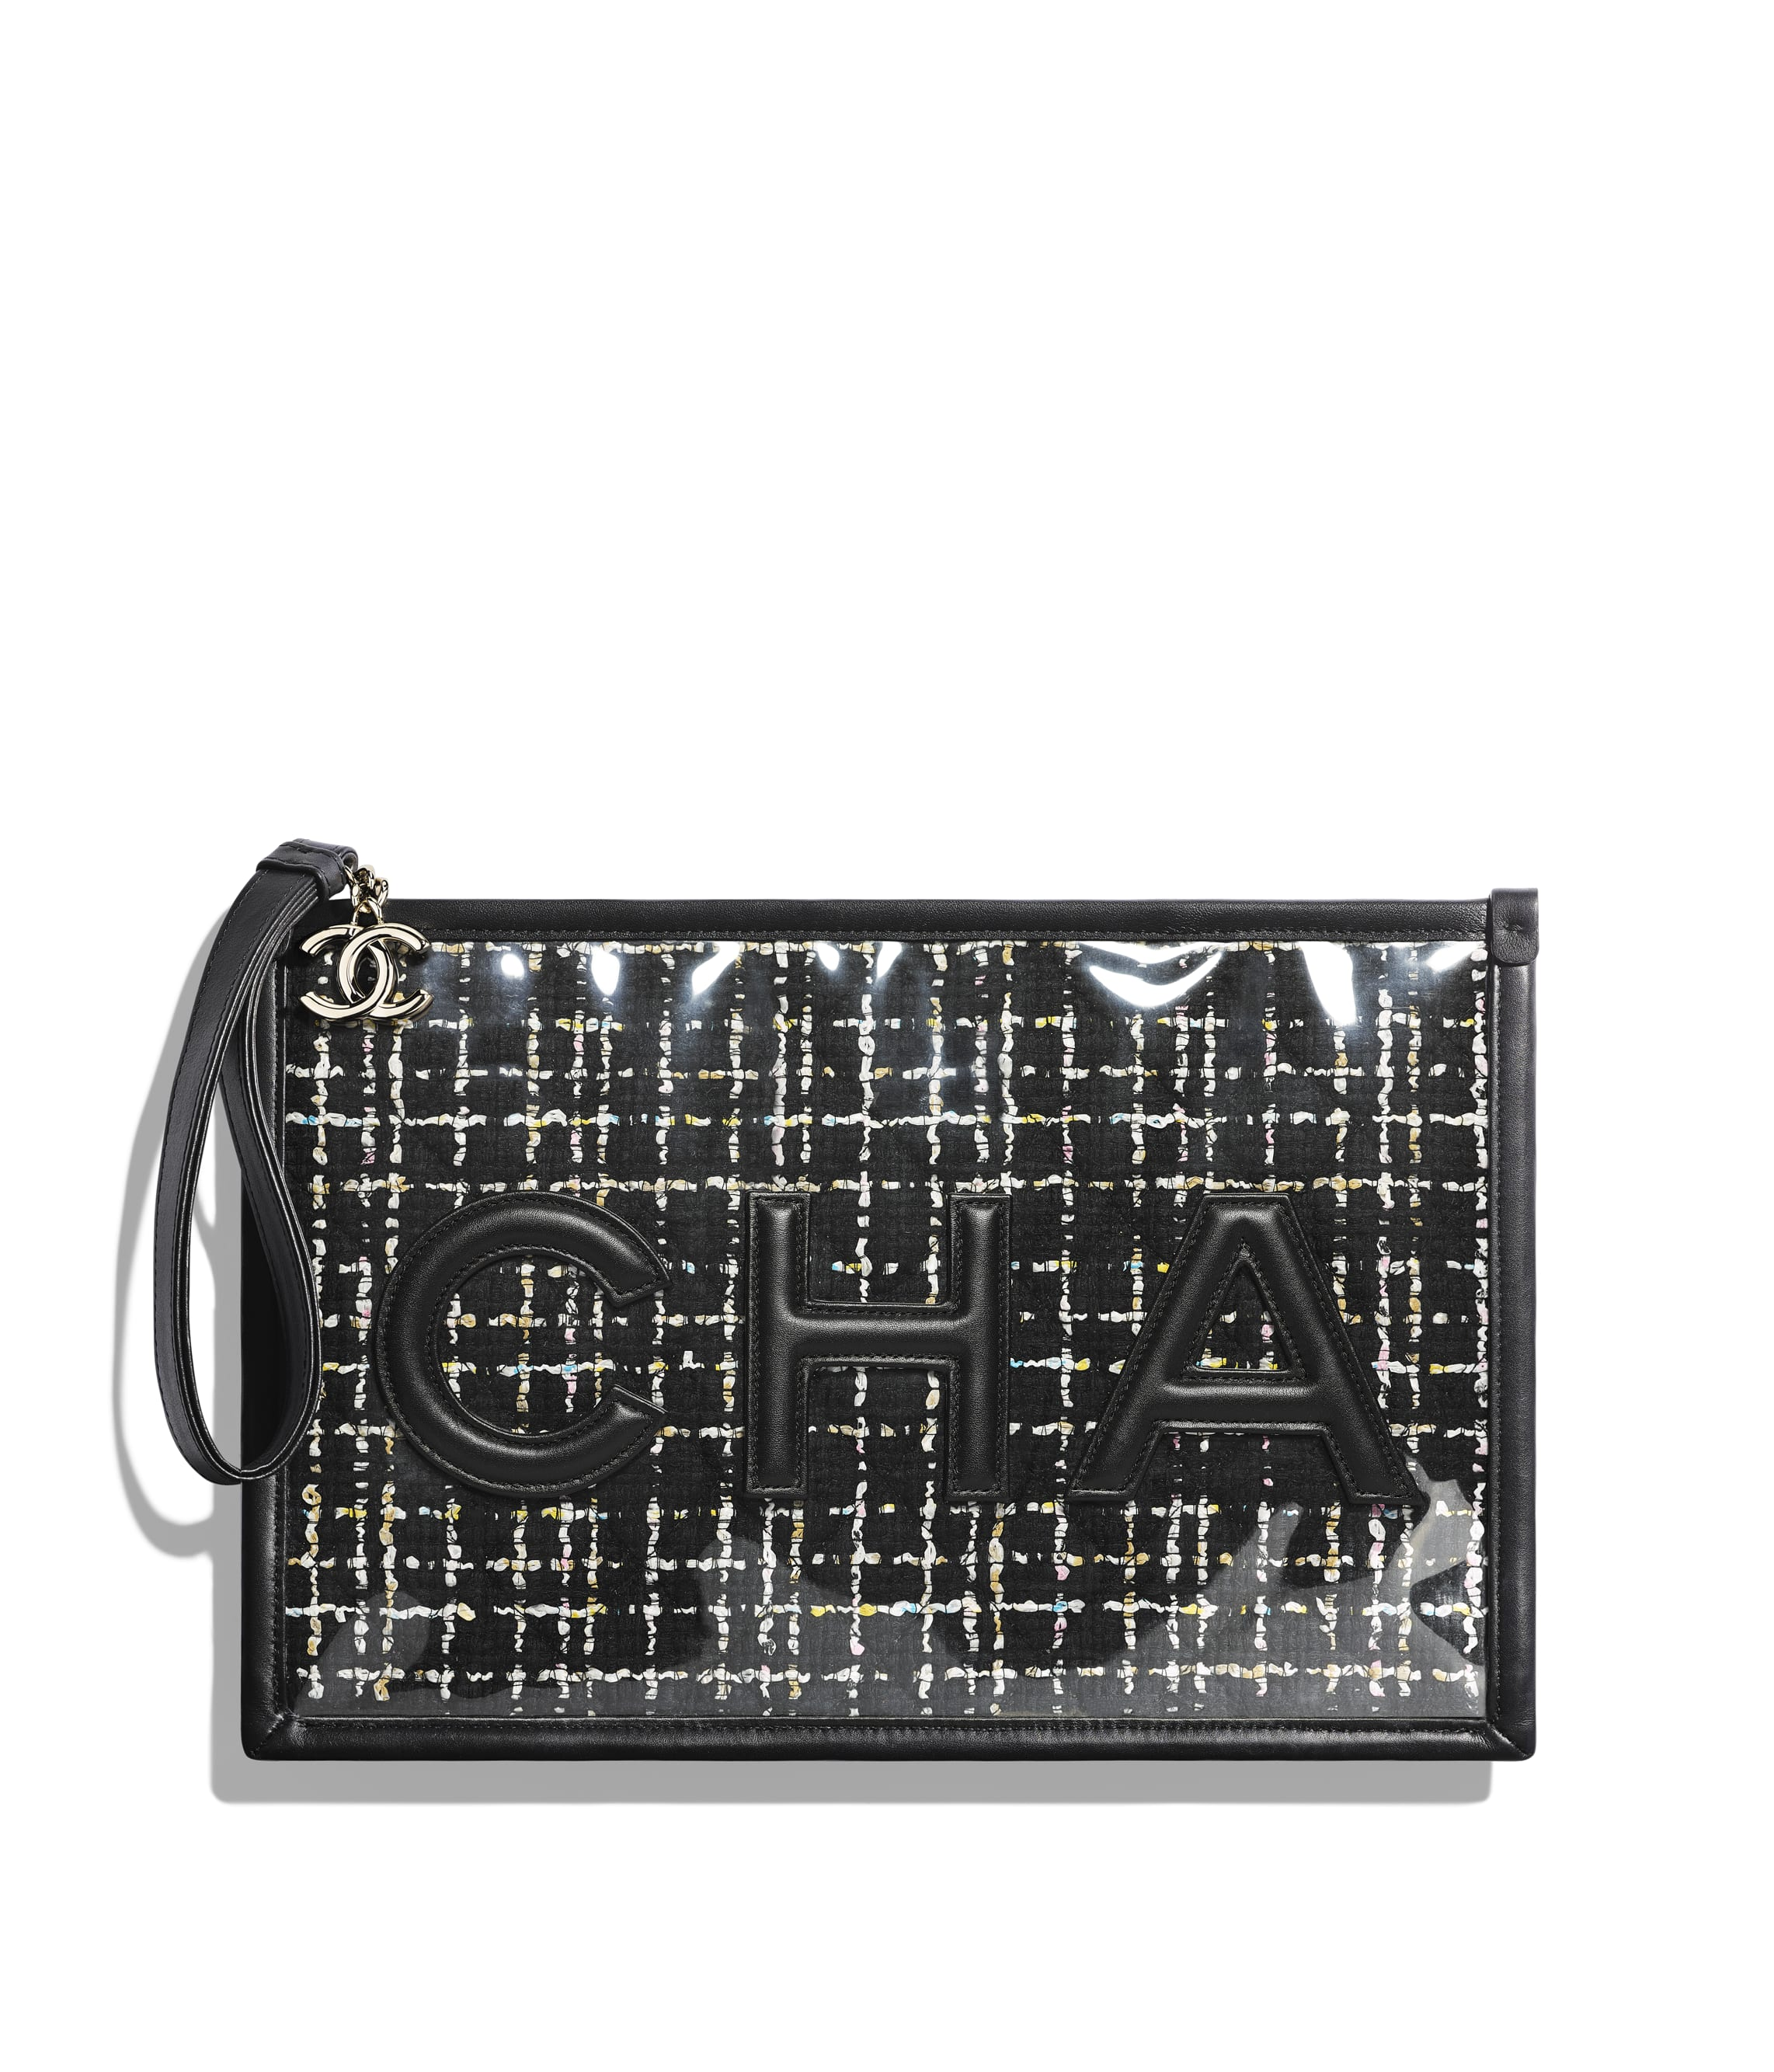 d6023c73ba Pouches   Cases - Small Leather Goods - CHANEL